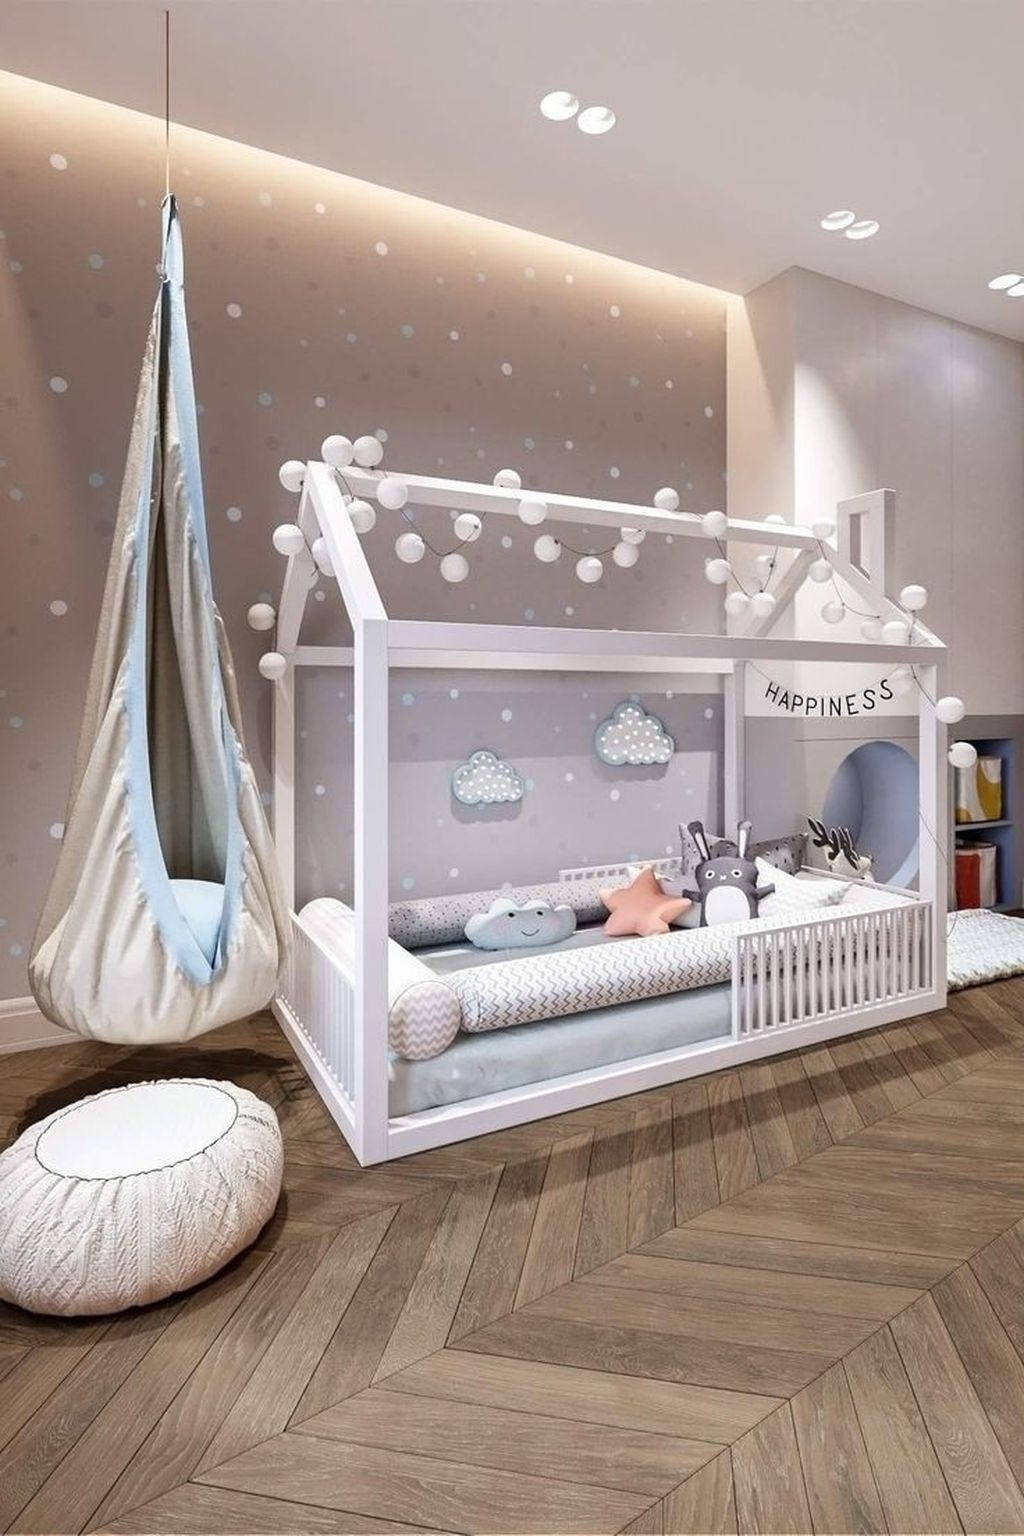 Inspiring Kids Room Design Ideas 15